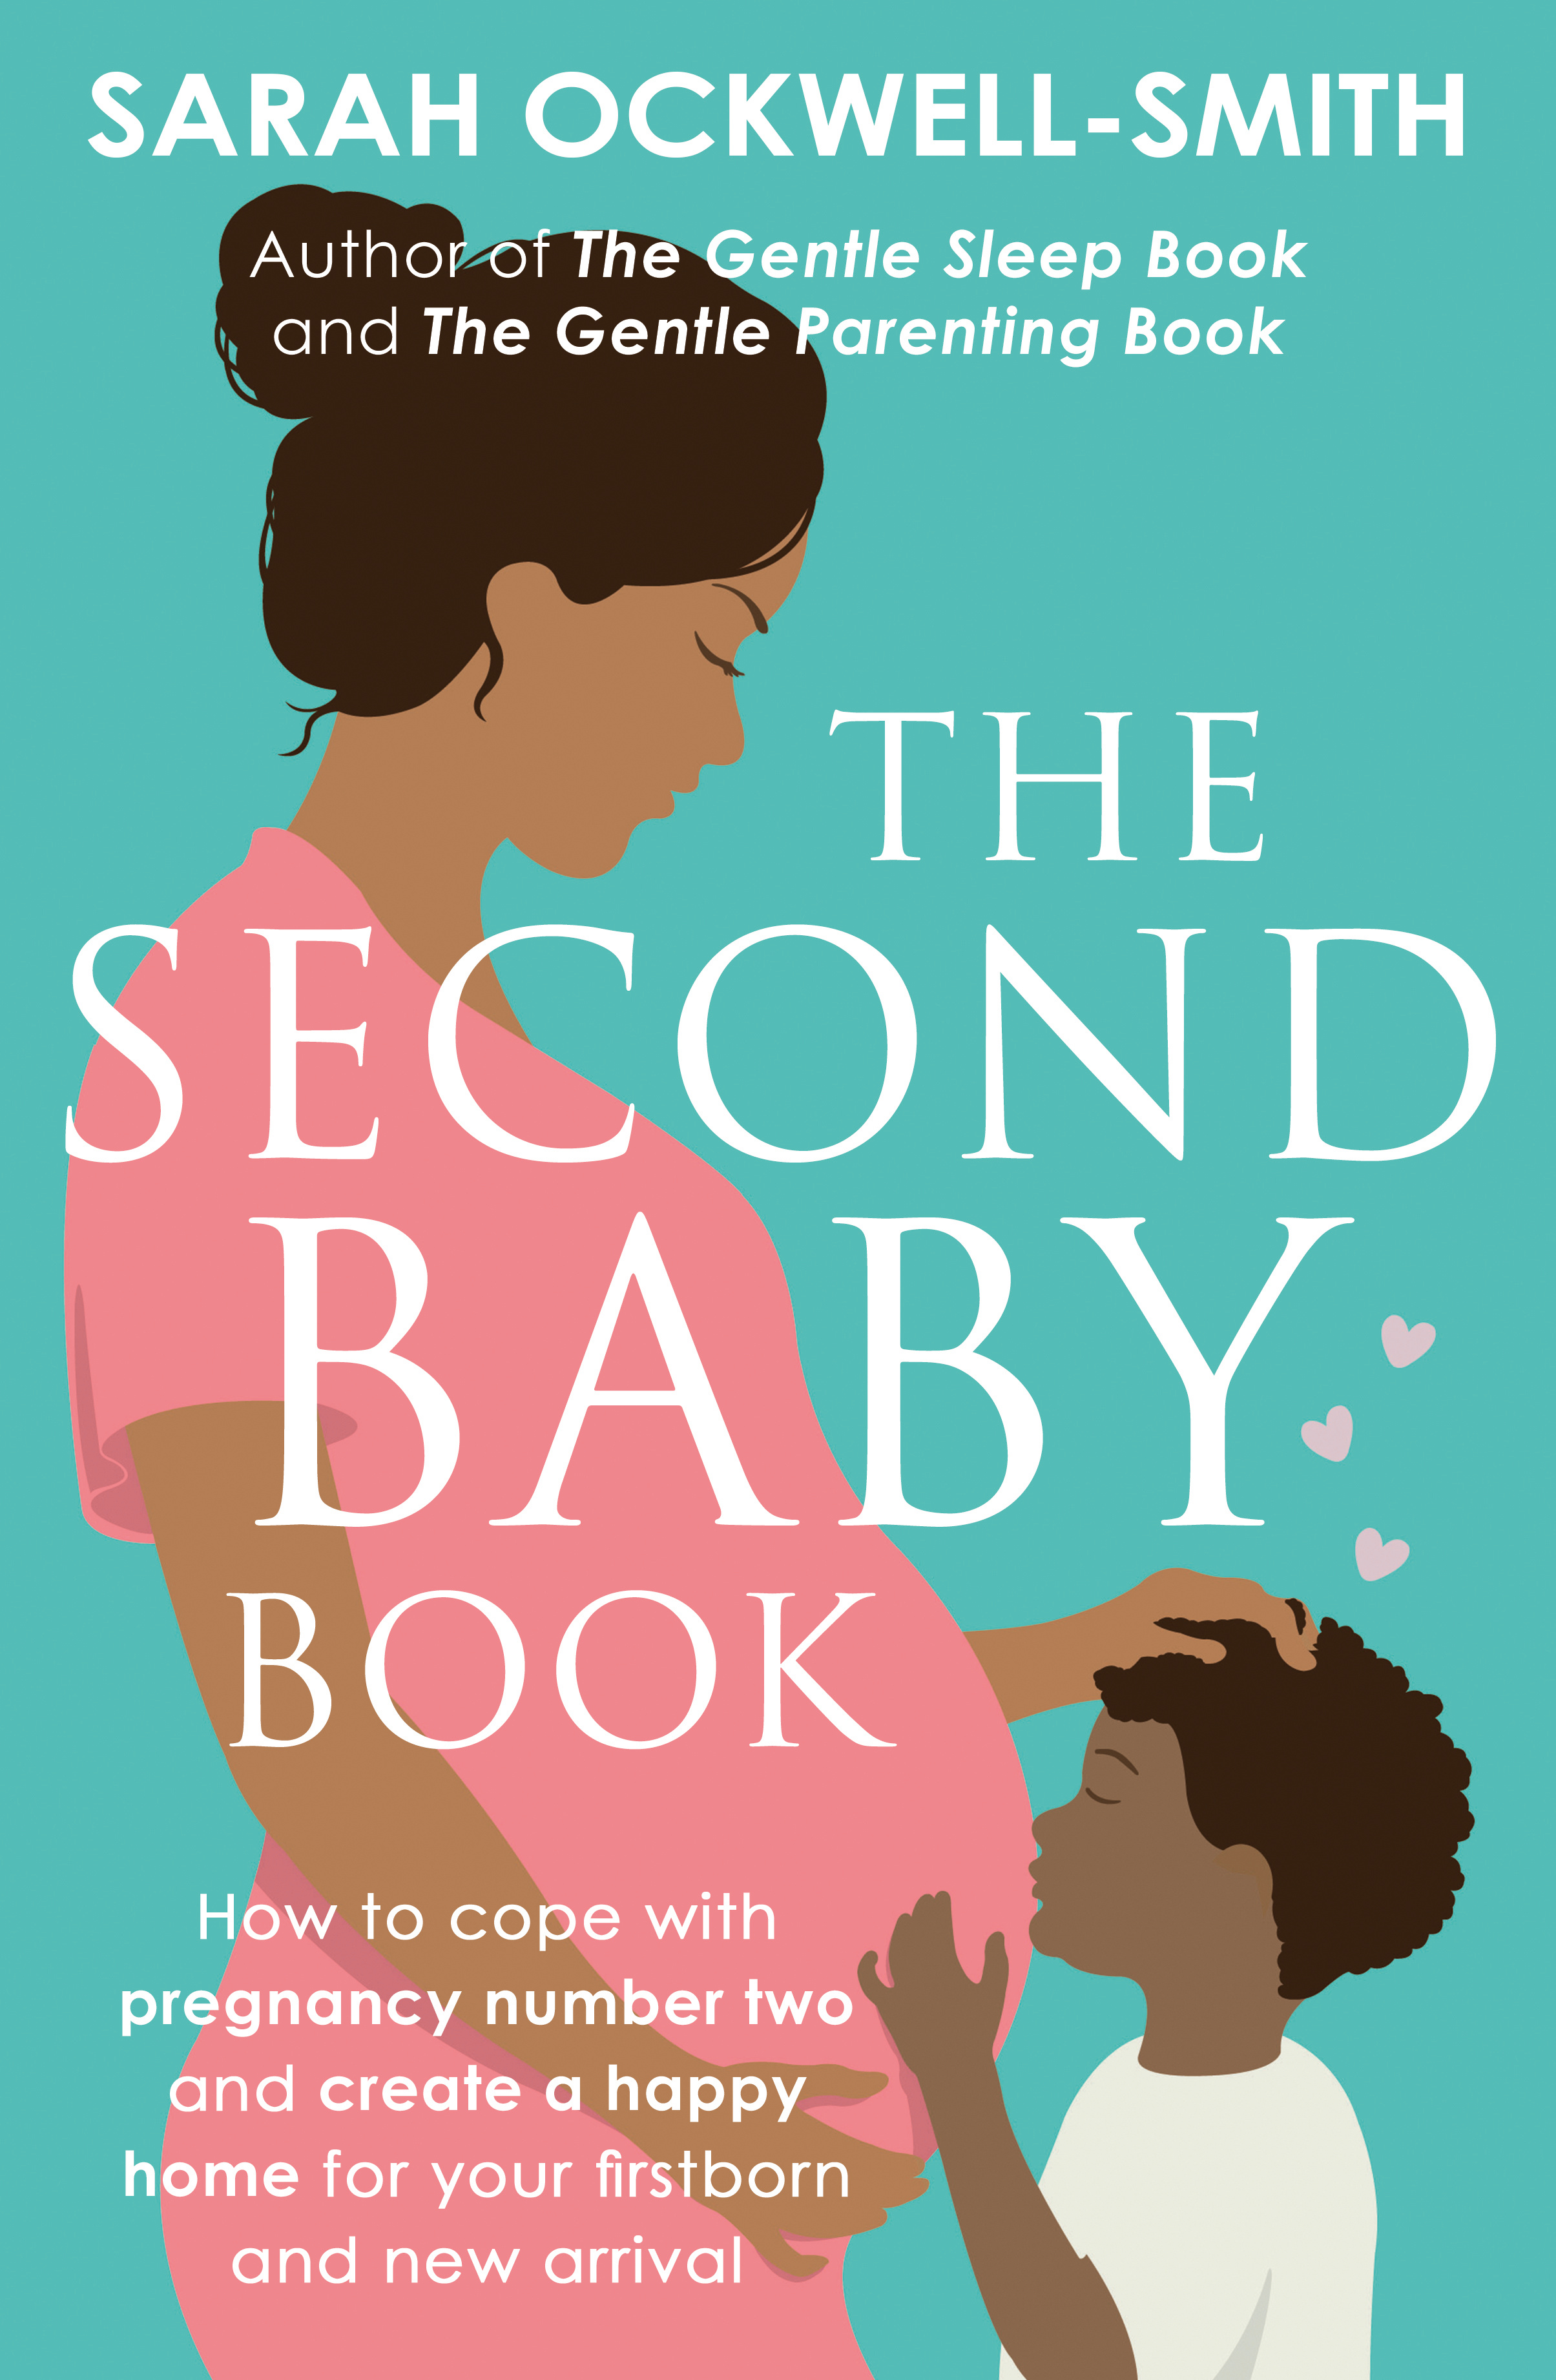 The Second Baby Book: How to cope with pregnancy number two and create a happy home for your firstborn and new arrival